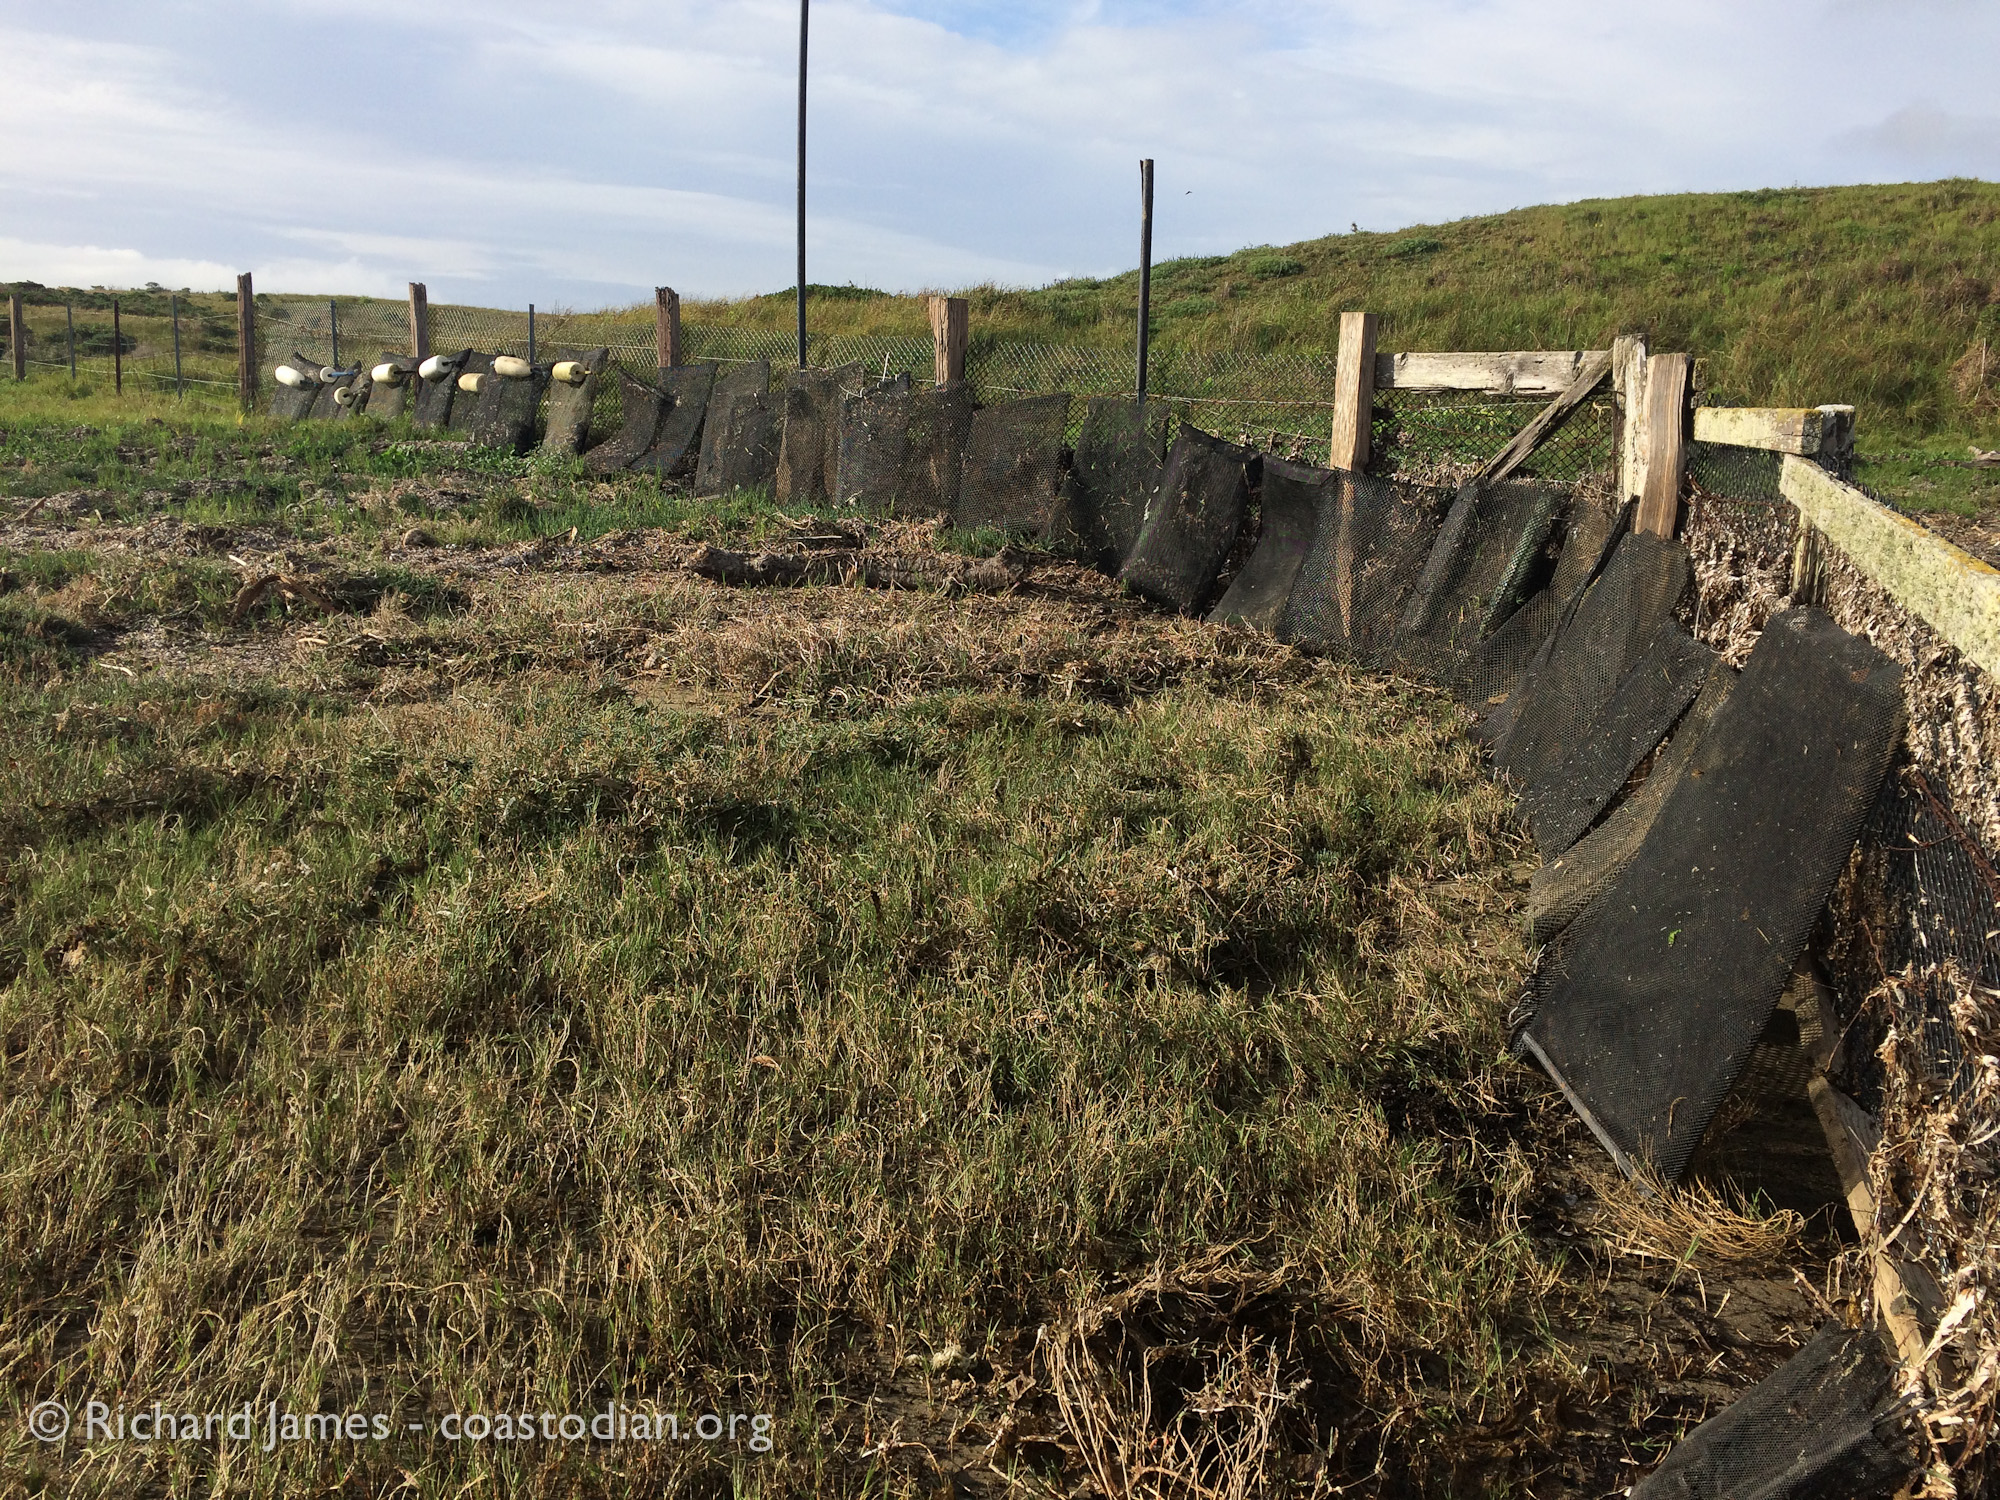 ©Richard James - coastodian.org Abandoned Hog Island Oysters grow-out bags collected adjacent to lease M-430-15 on 22 March, 2015